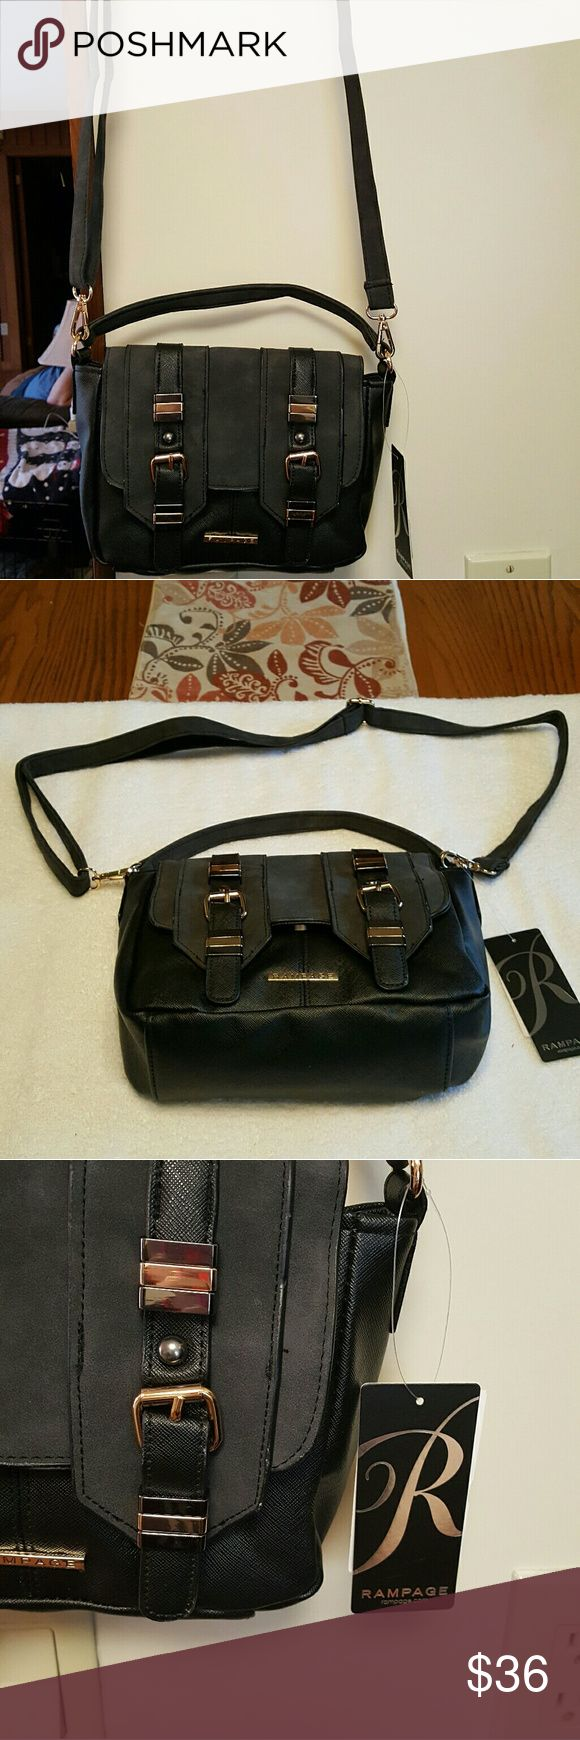 NWT Small crossbows bag This is a brand new small crossbody purse by Rampage it is made of man-made materials but it's cute as a button Rampage Bags Mini Bags